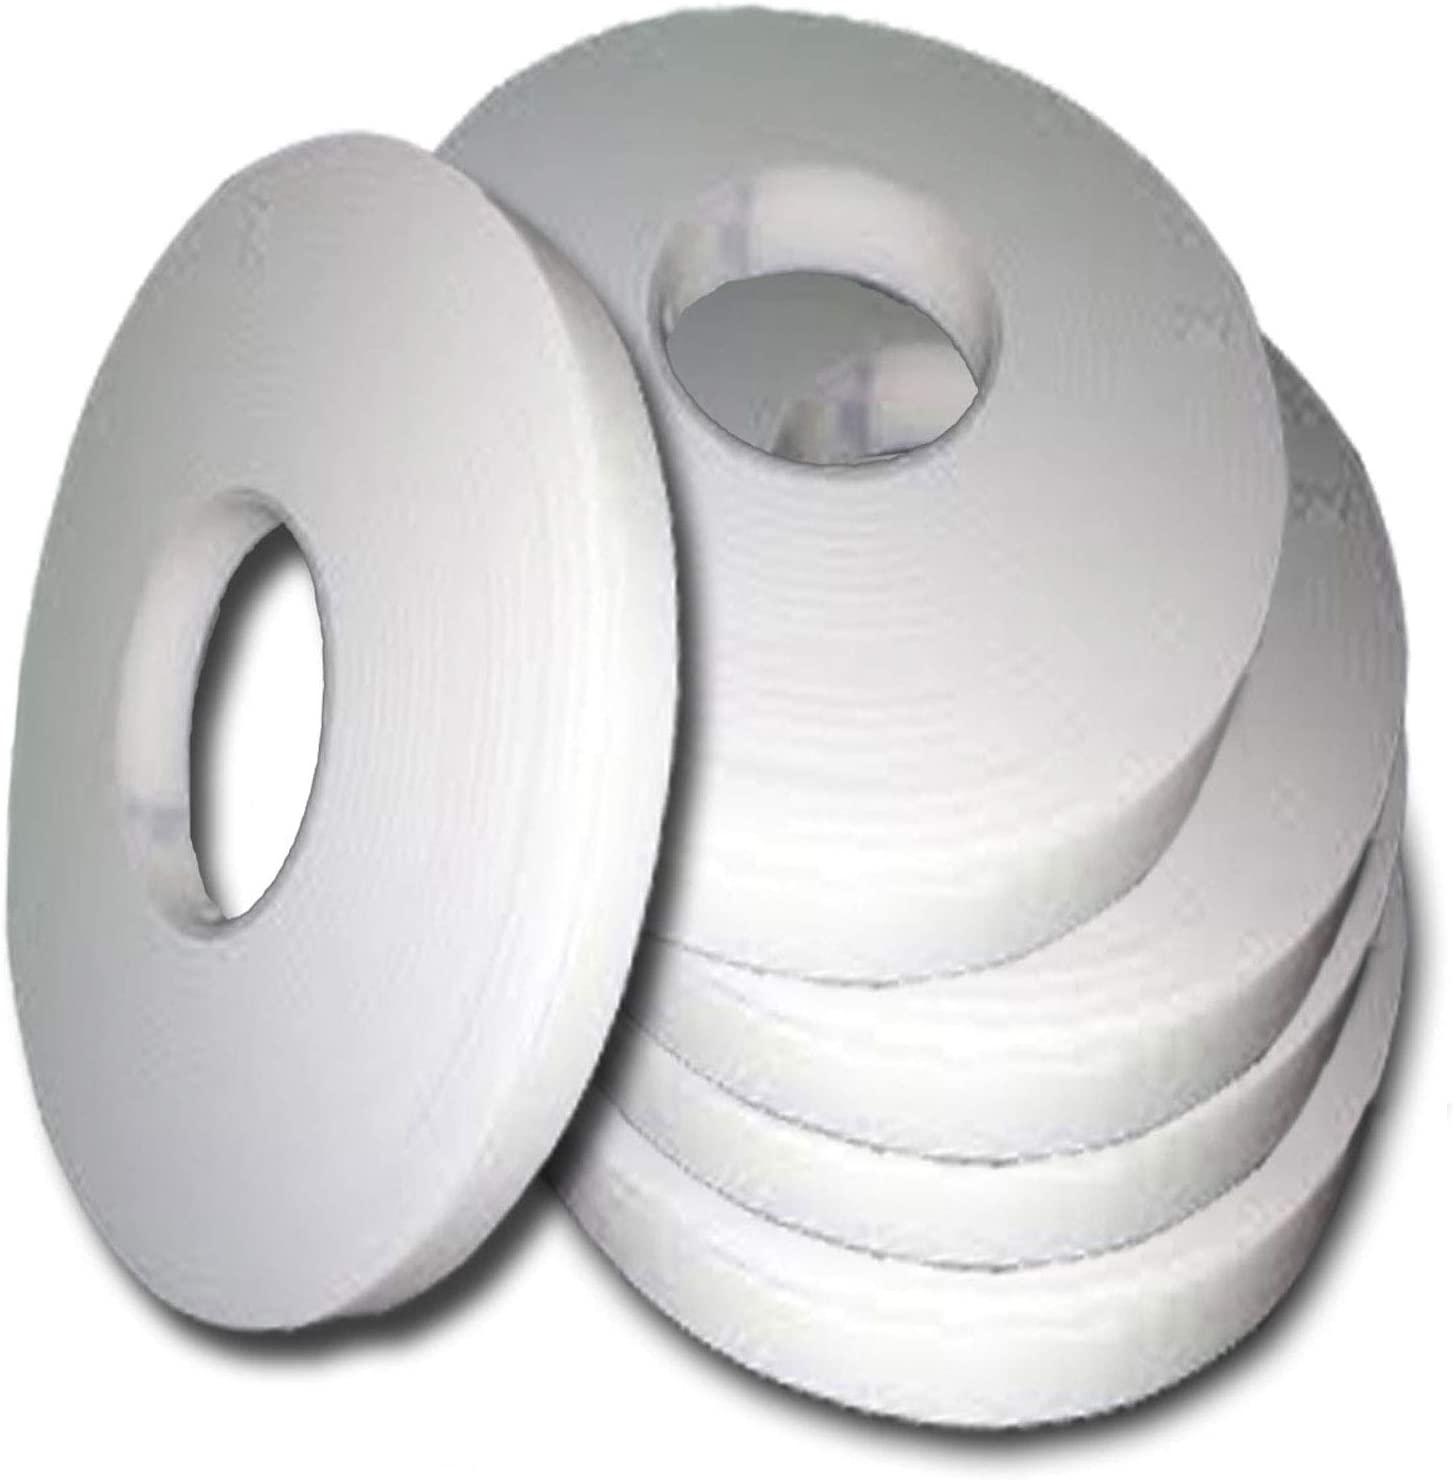 4 x 19 mm Wide x 9 m Long Anti Hot Spot Tape for Polytunnels